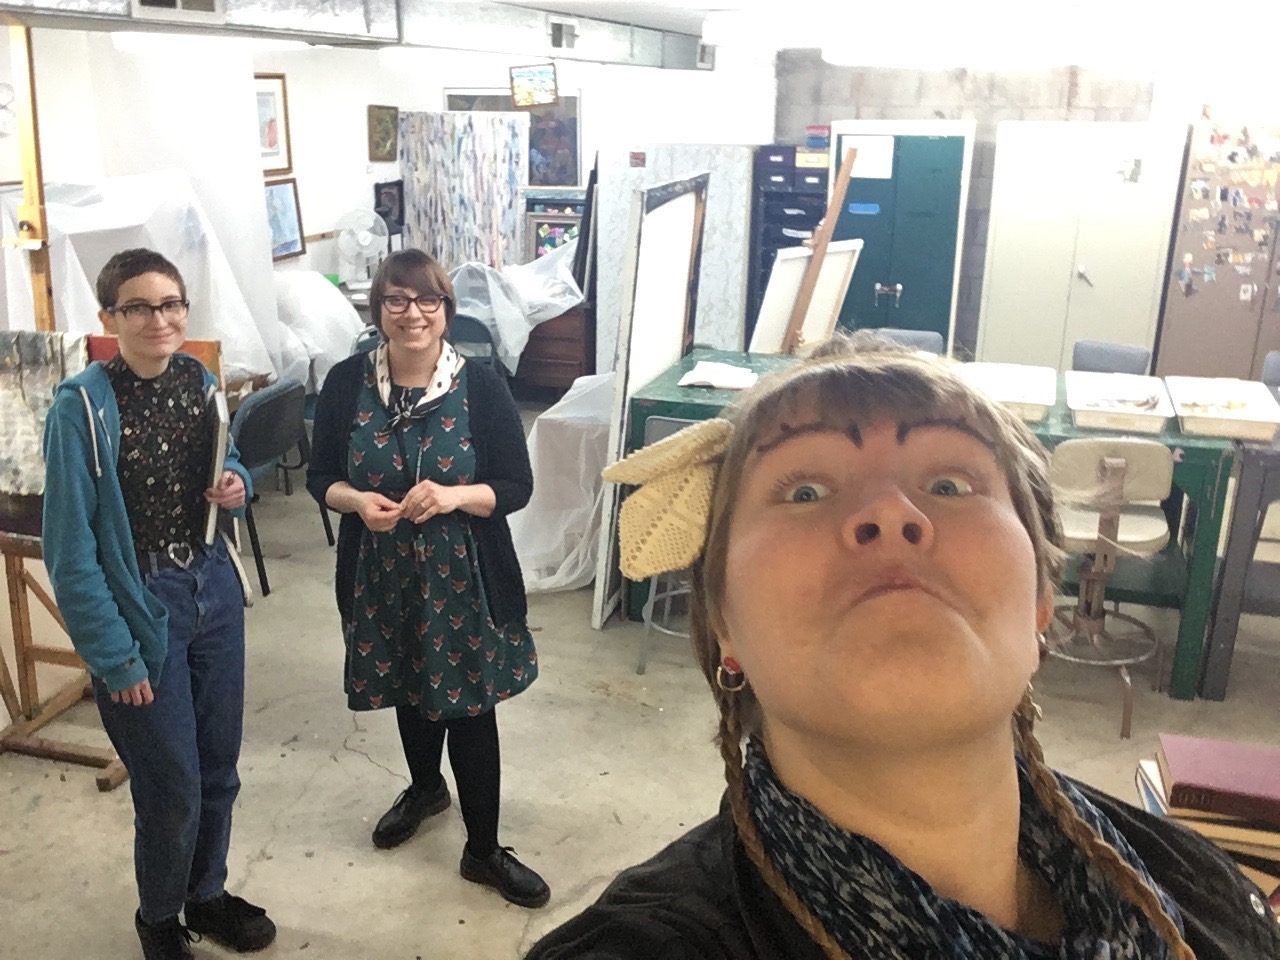 Iris, Jes and Me! A happy selfie after all that paper-cutting.